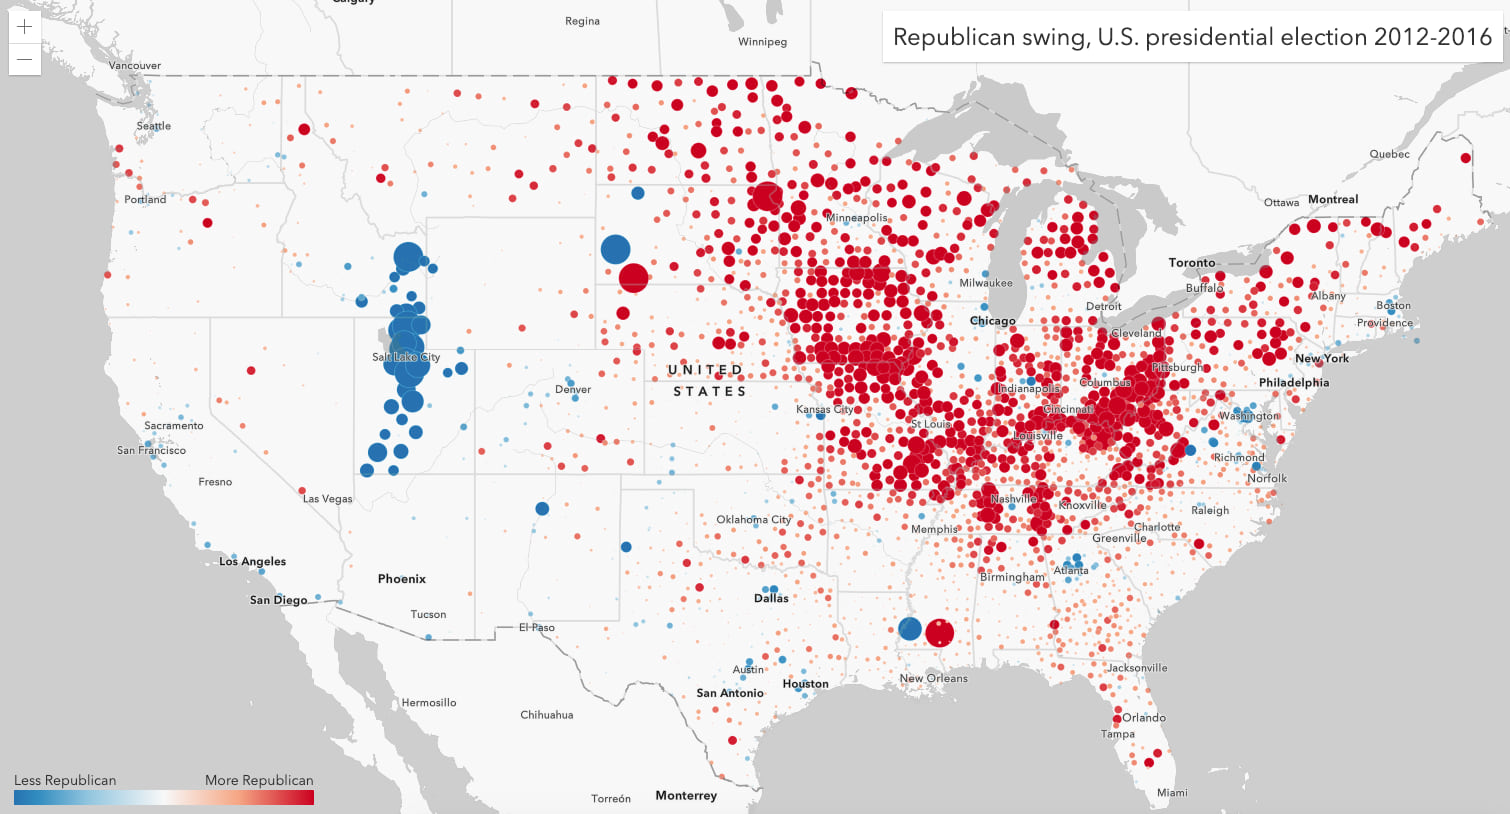 Republican swing in the 2016 election. Red icons indicate counties where a higher percentage of people voted for the Republican candidate compared to 2012. Blue counties represent a decline in Republican support. Size indicates the strength of the swing.